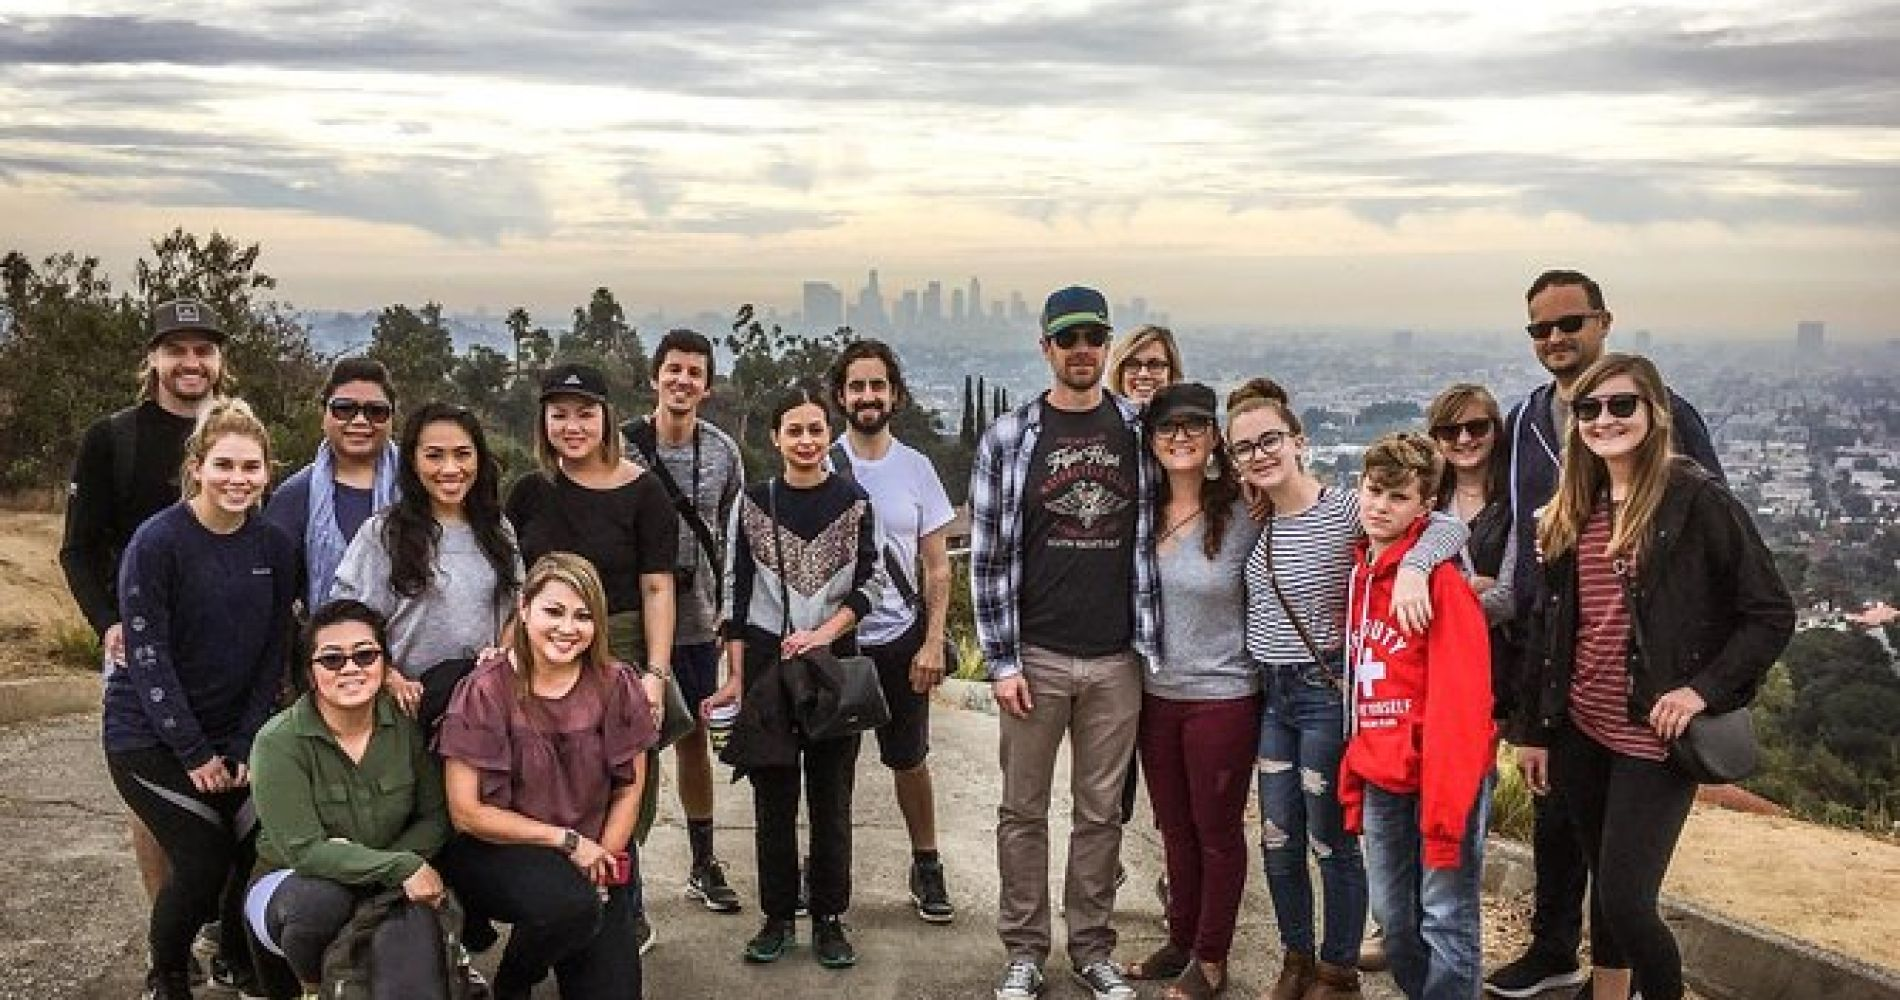 Hollywood Sign, Griffith Park Observatory Hiking Tour